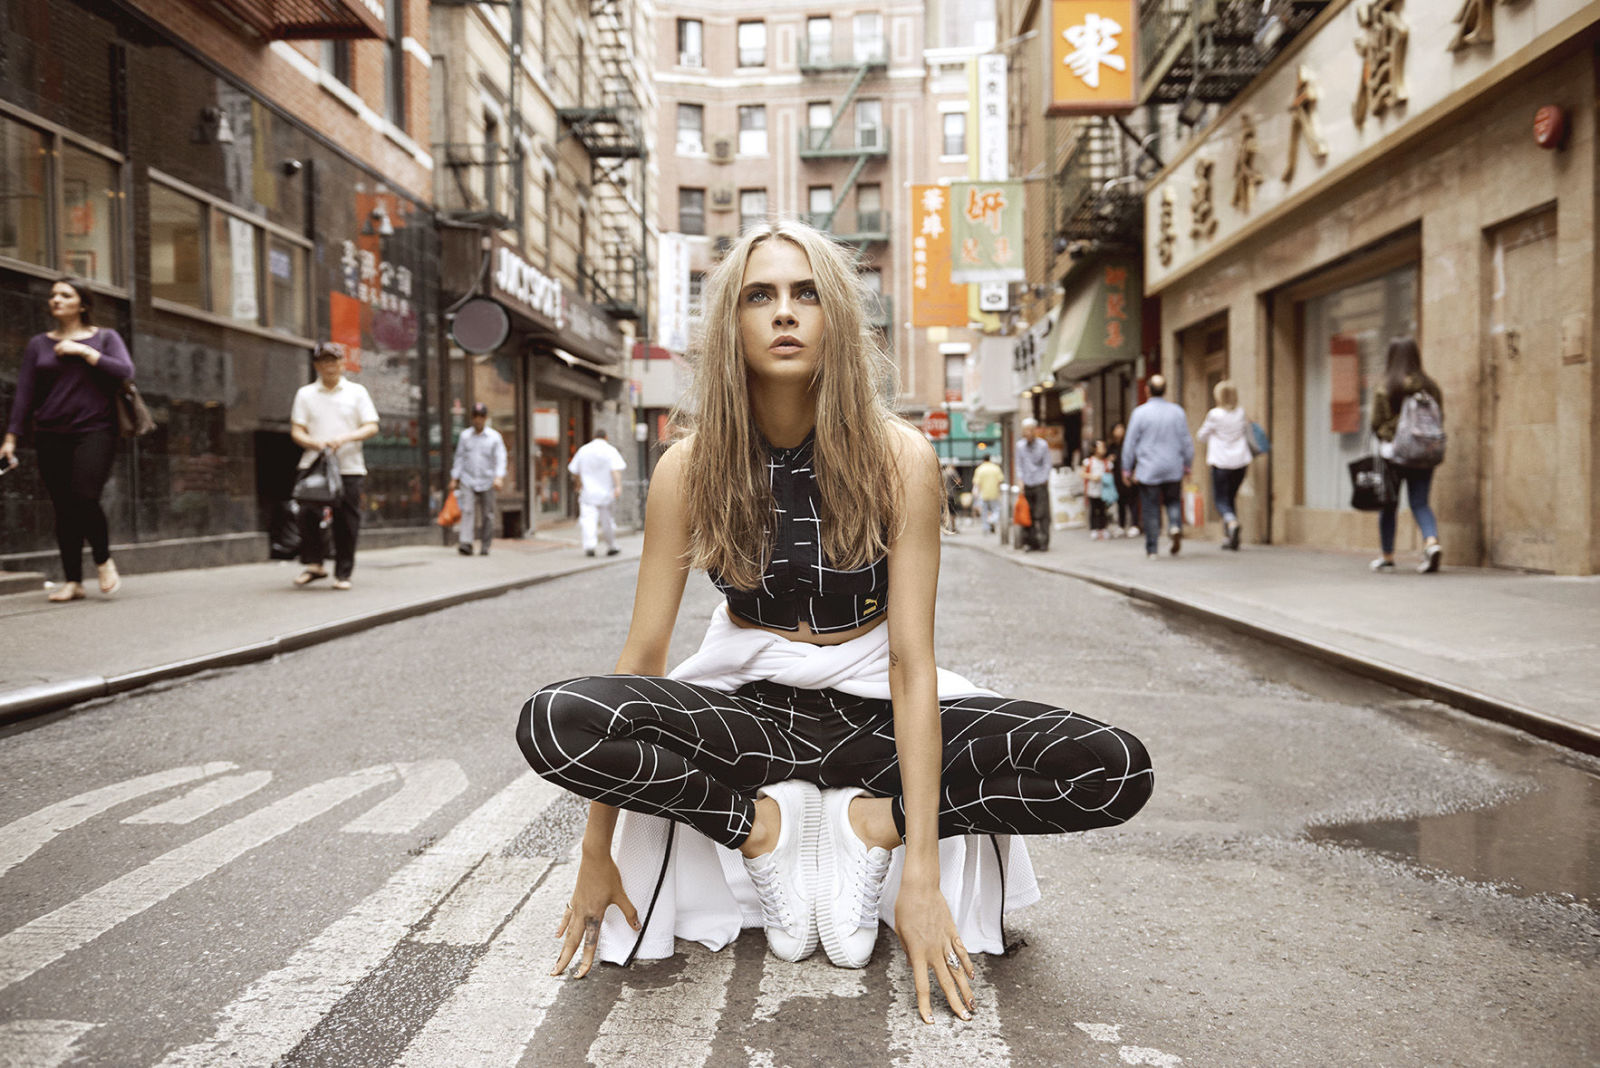 Cara Delevingne models for Puma's Do You women's campaign